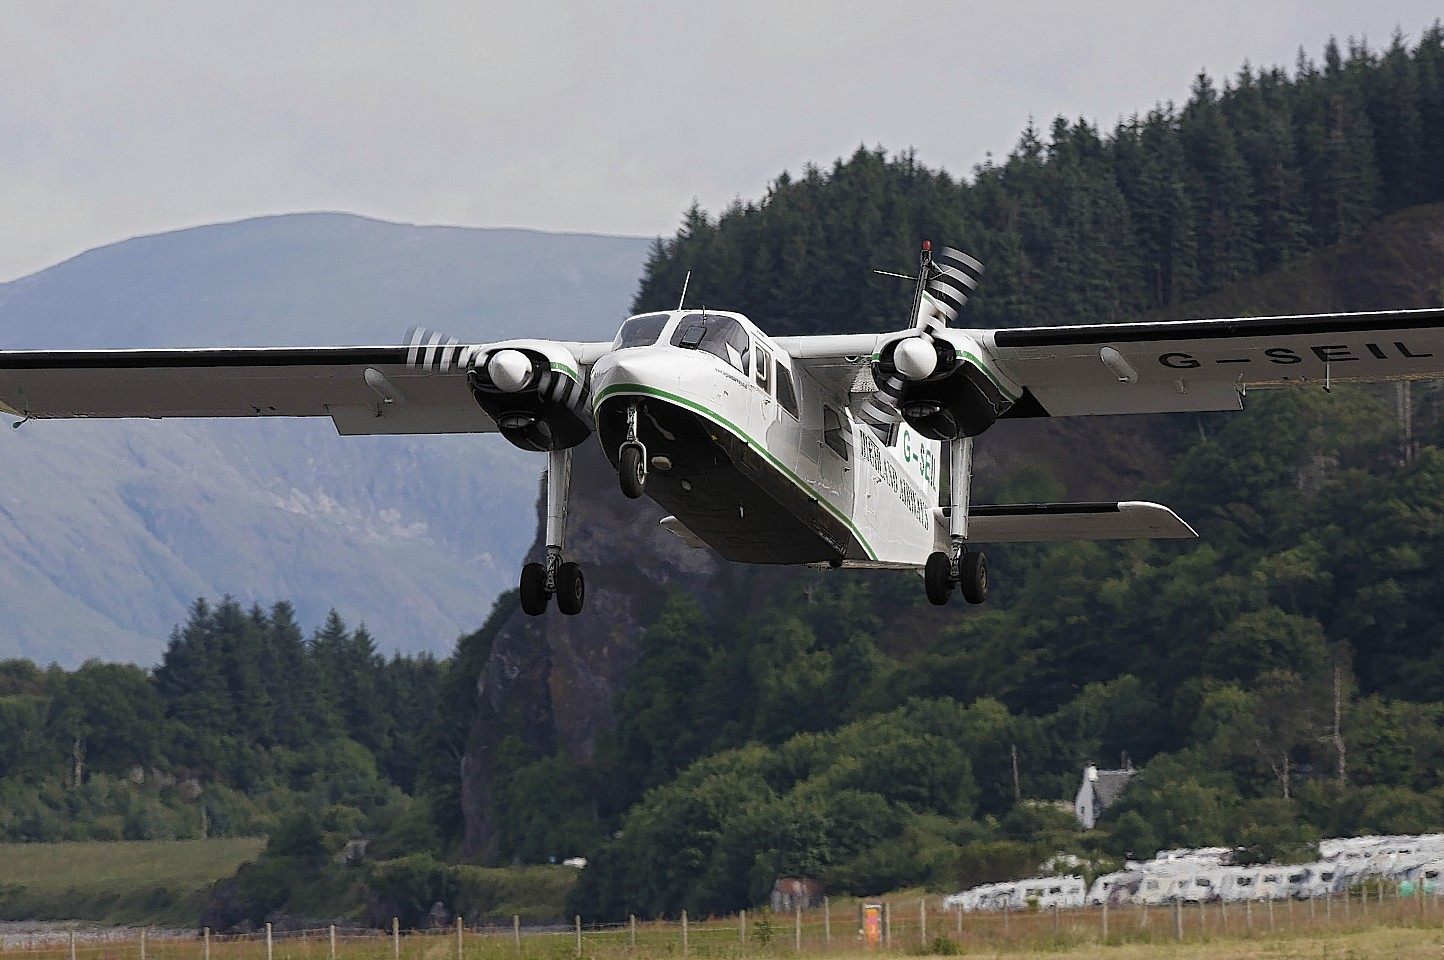 The exercise is planned for Saturday at Oban Airport